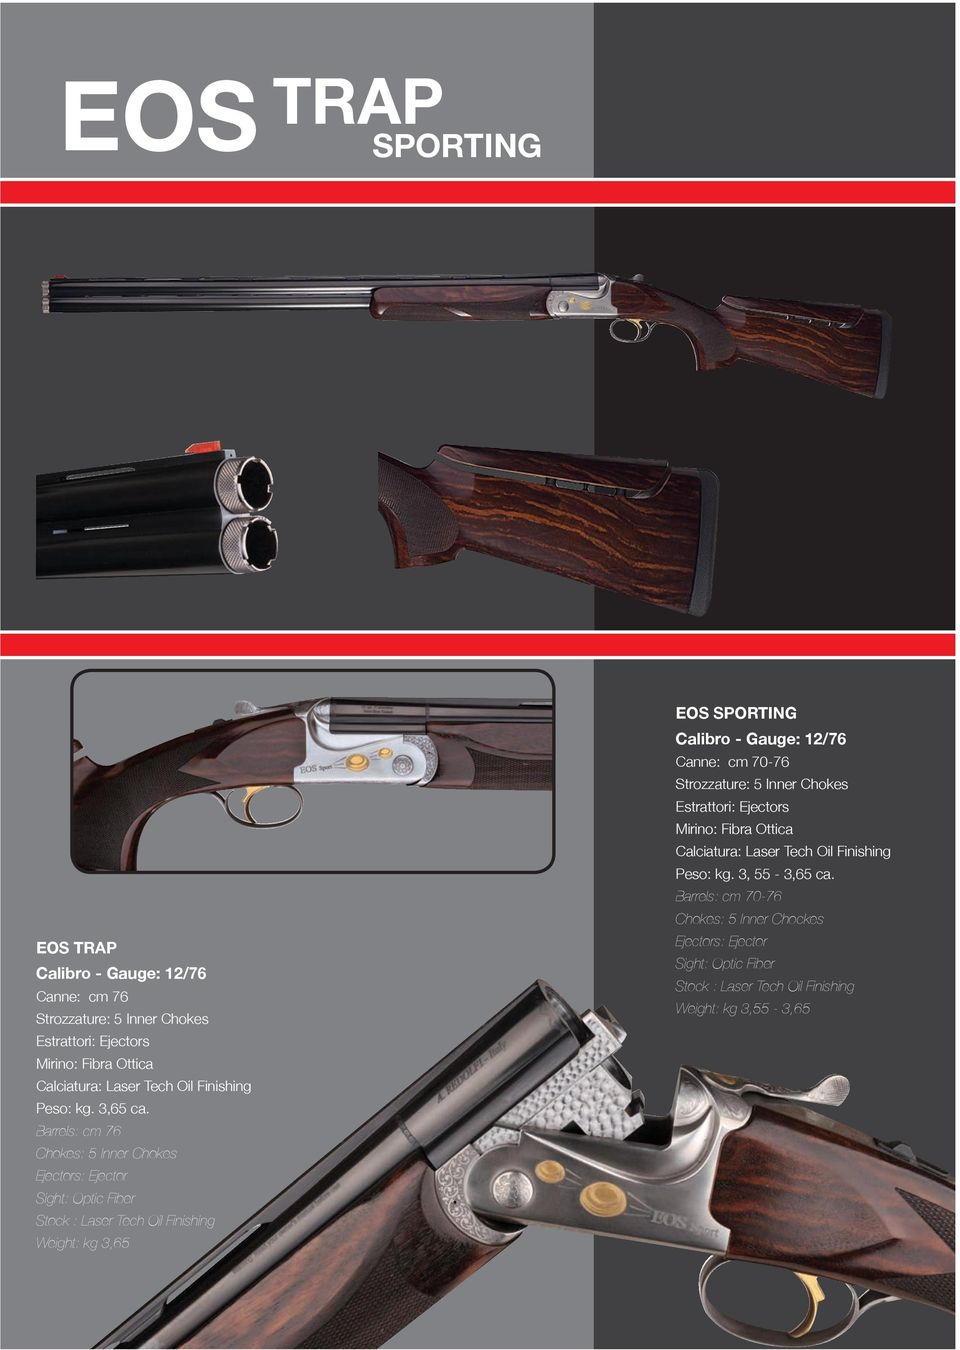 Barrels: cm 76 Chokes: 5 Inner Chokes Stock : Laser Tech Oil Finishing Weight: kg 3,65 EOS SPORTING Canne: